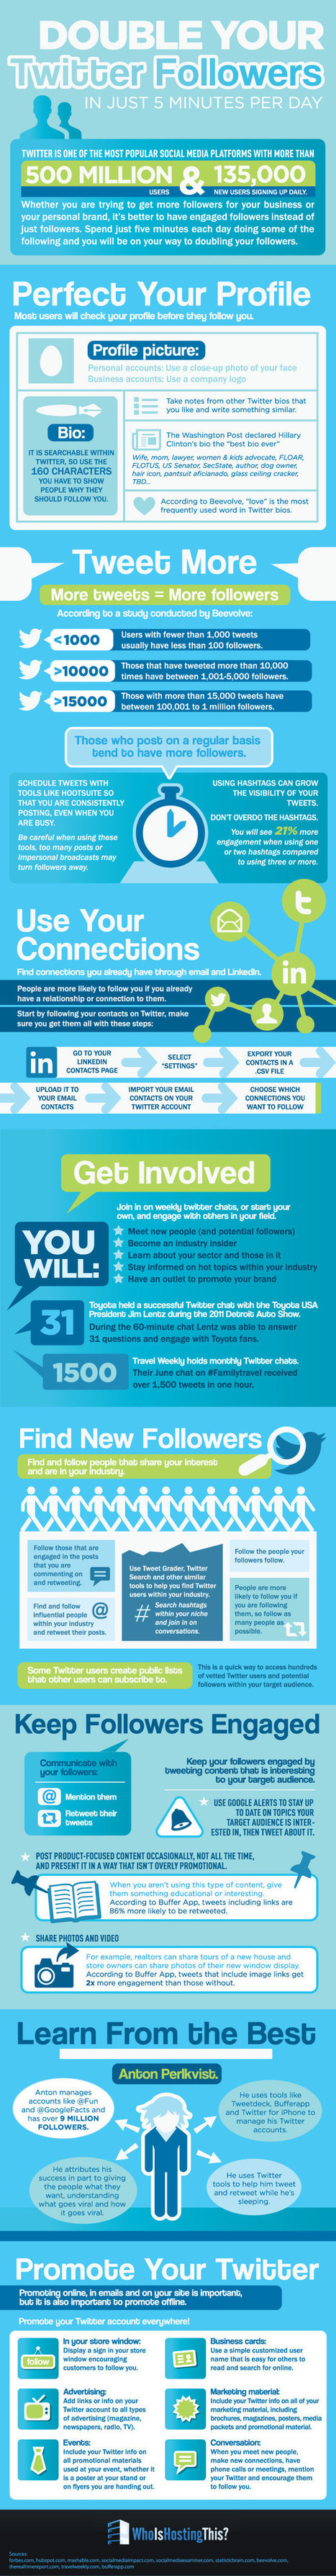 Double Your Twitter Followers In Just 5 Minutes Per Day [INFOGRAPHIC] | Integrated Brand Communications | Scoop.it